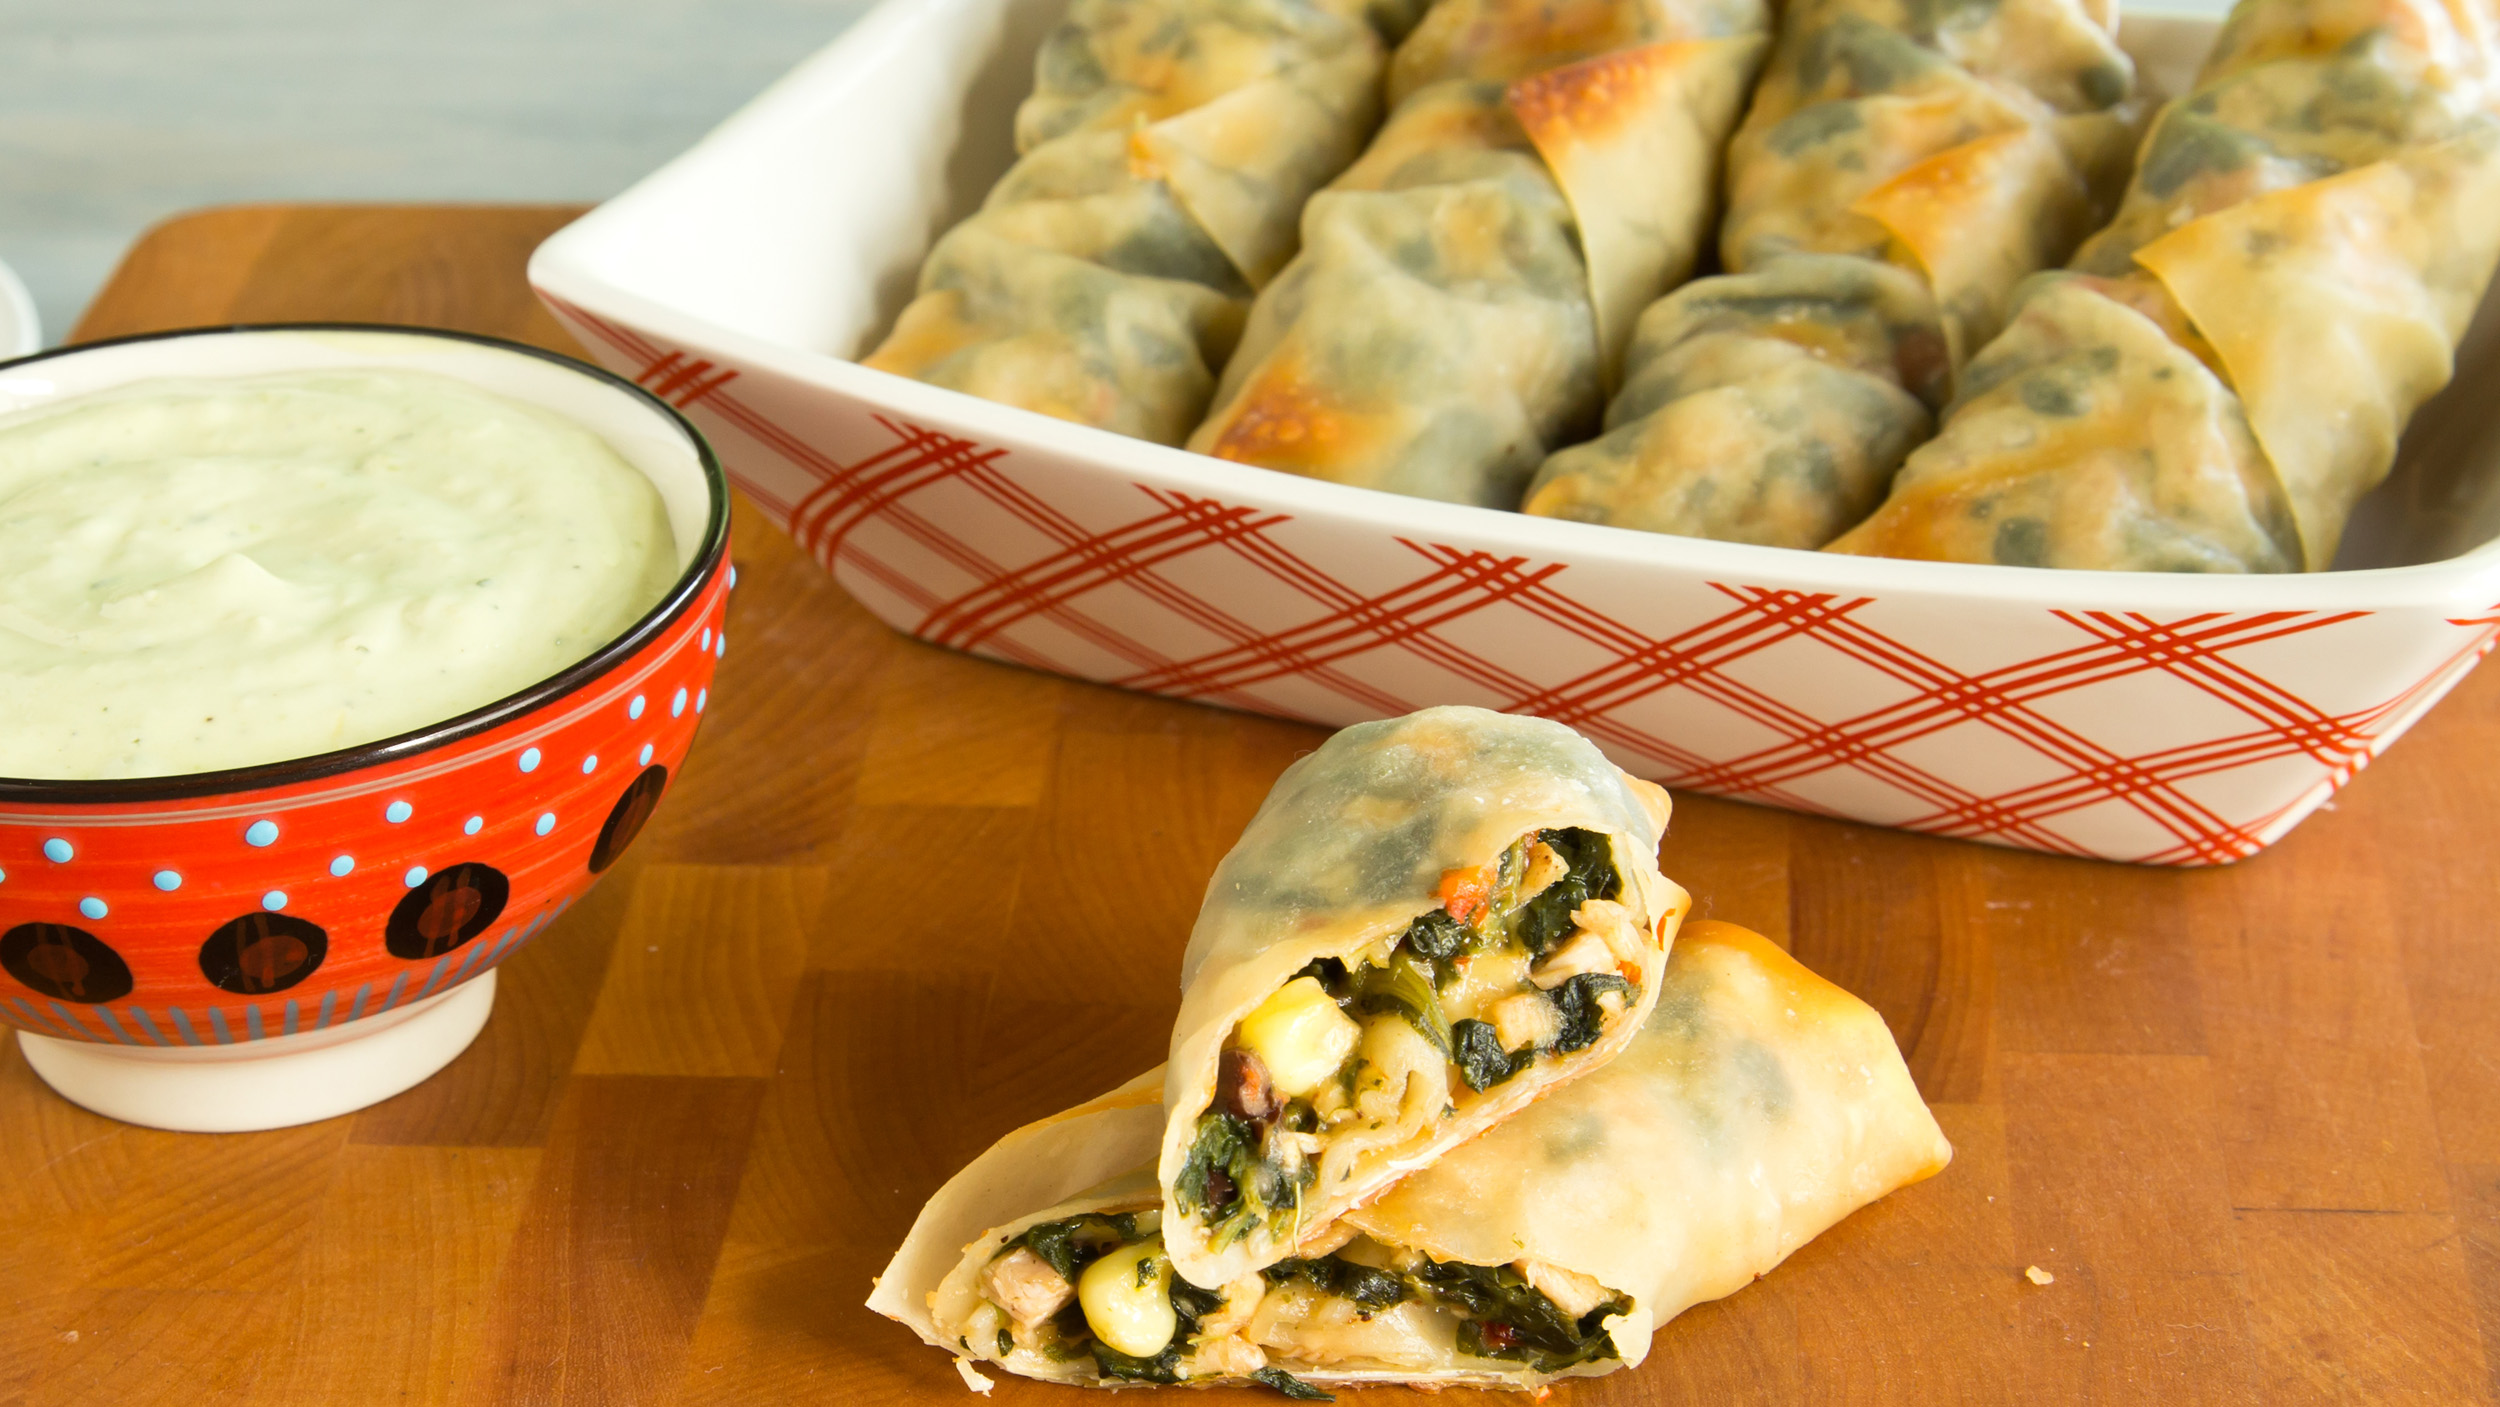 This Southwestern egg rolls recipe remakes a Chili's fave - TODAY.com